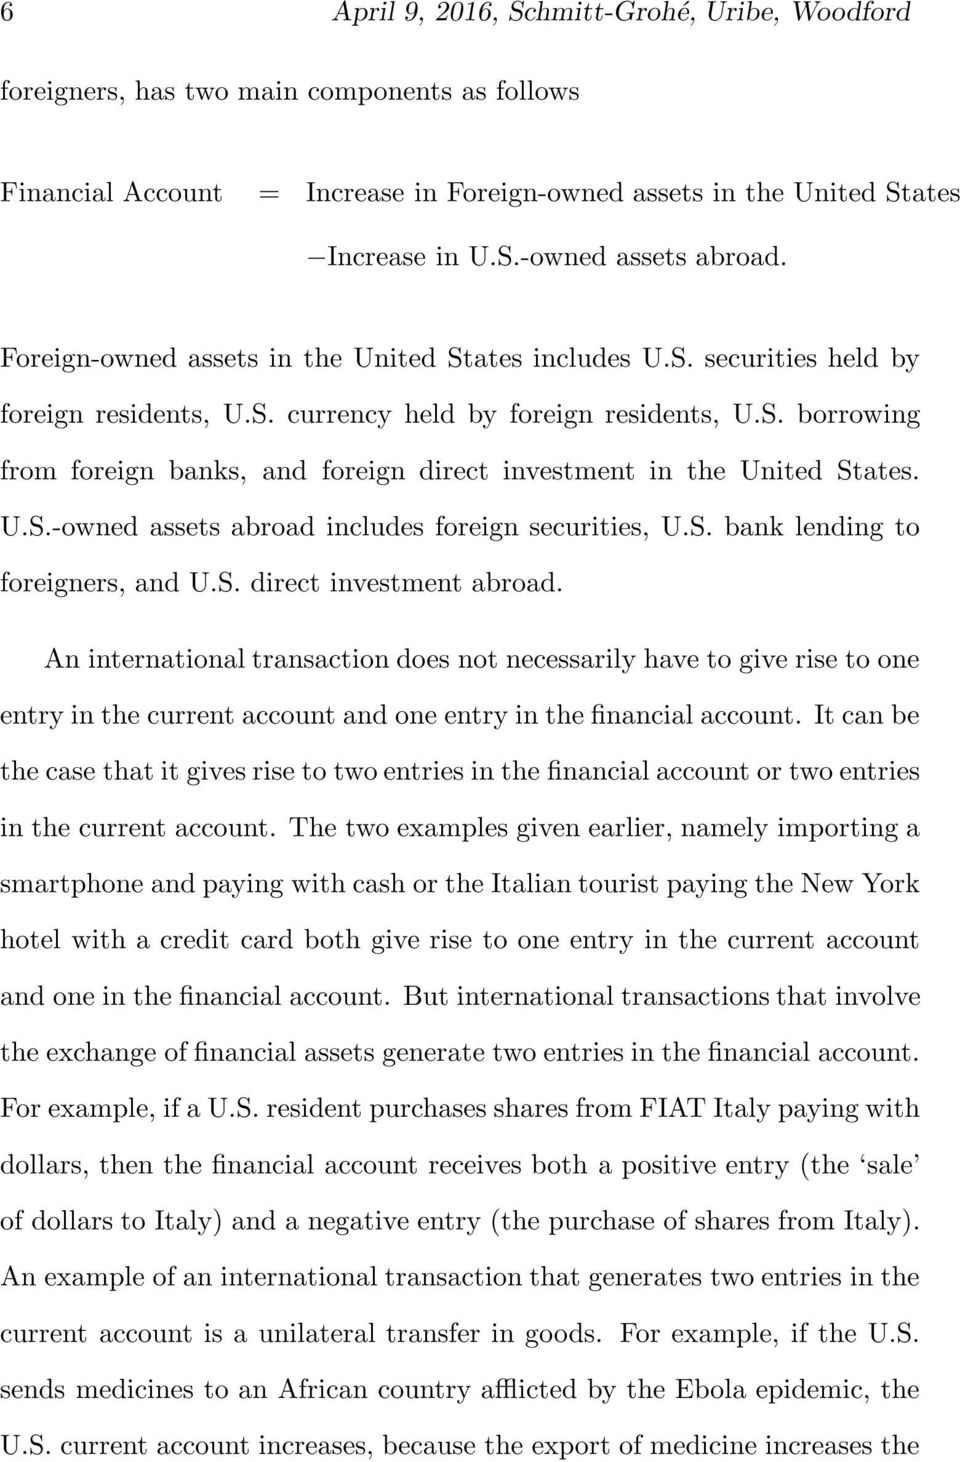 U.S.-owned assets abroad includes foreign securities, U.S. bank lending to foreigners, and U.S. direct investment abroad.